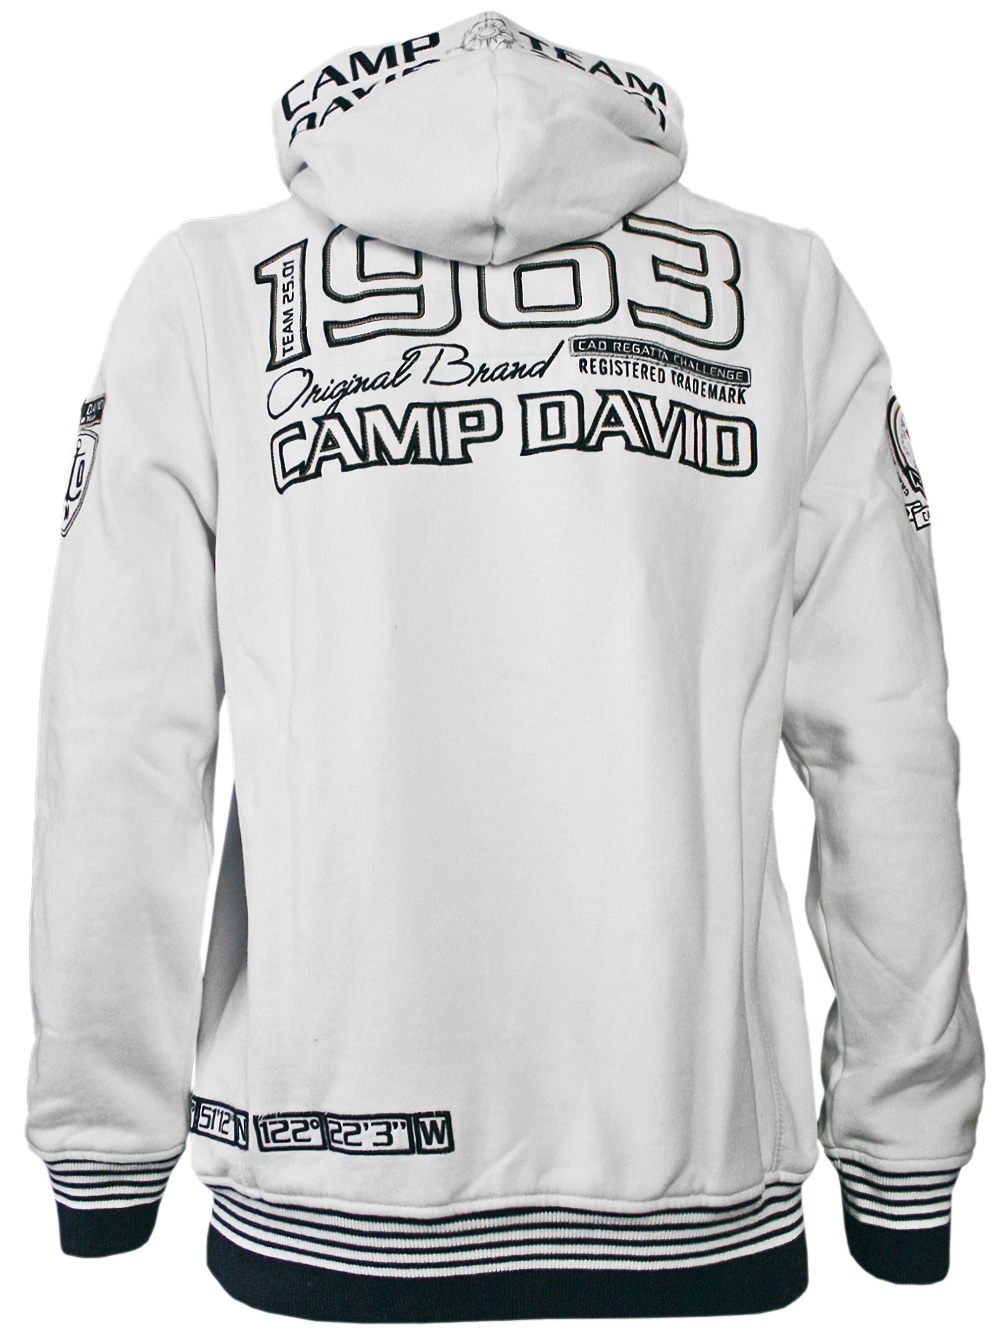 camp david jacke blau camp david herren jacke heli skiing blau neu ebay camp david herren. Black Bedroom Furniture Sets. Home Design Ideas